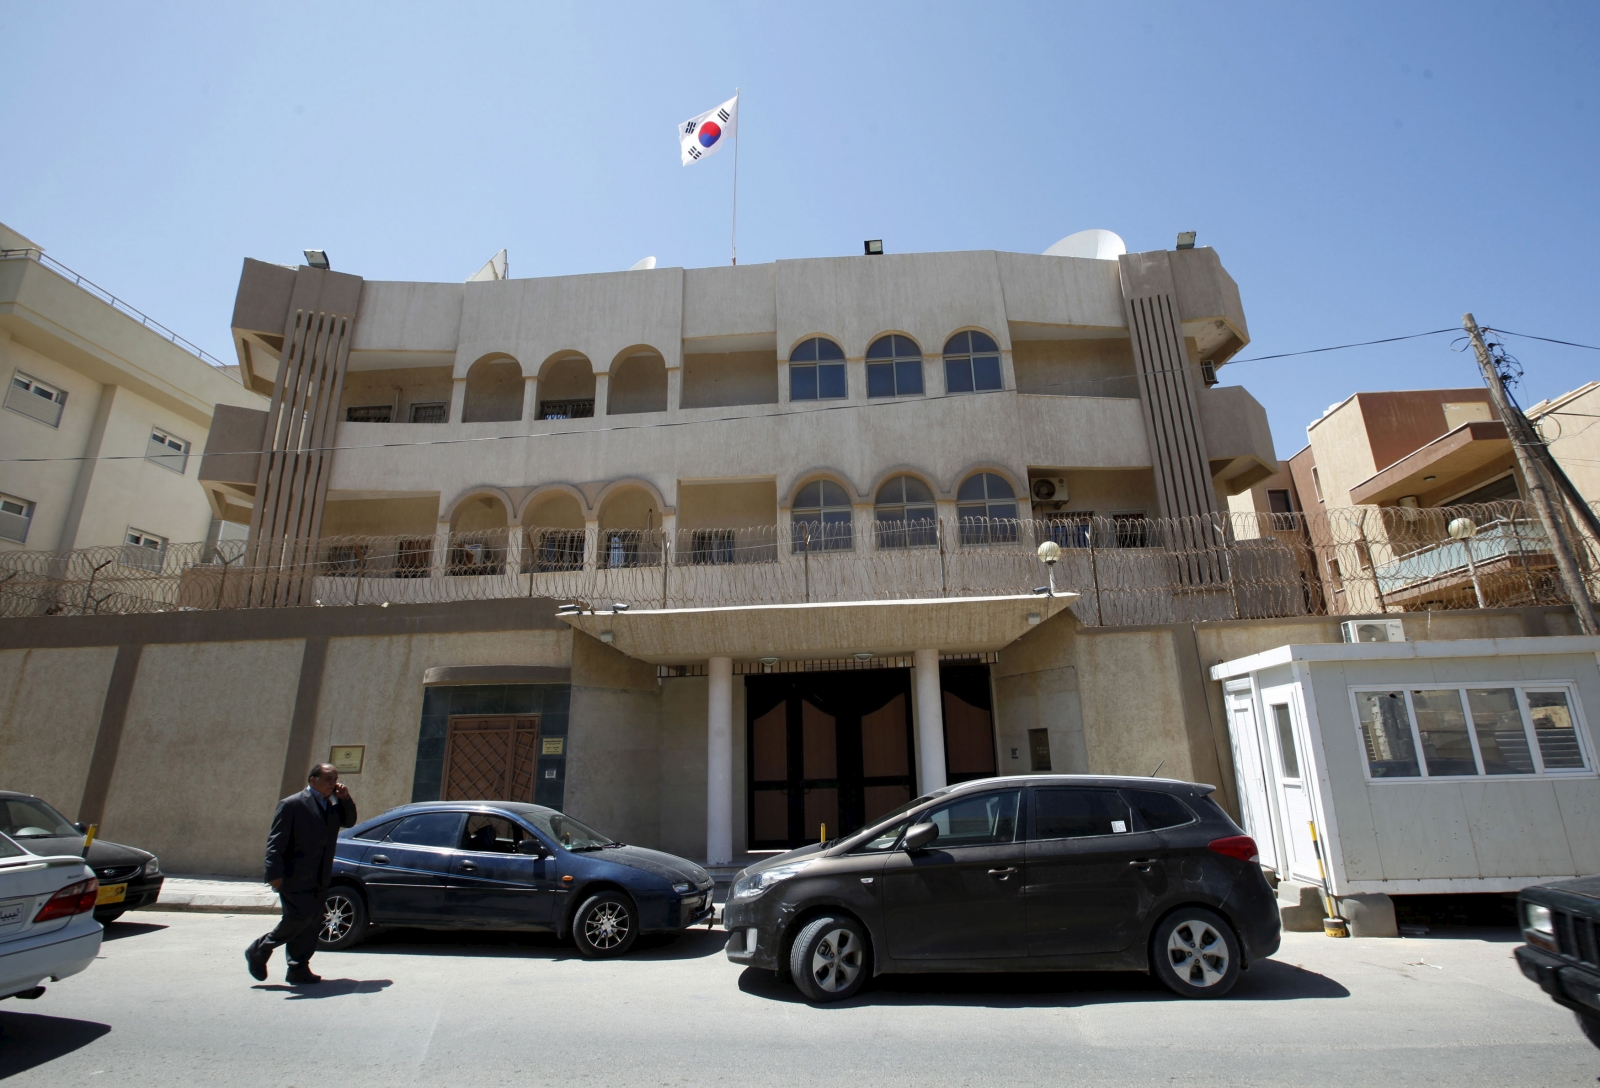 Isis attack embassies in Libya